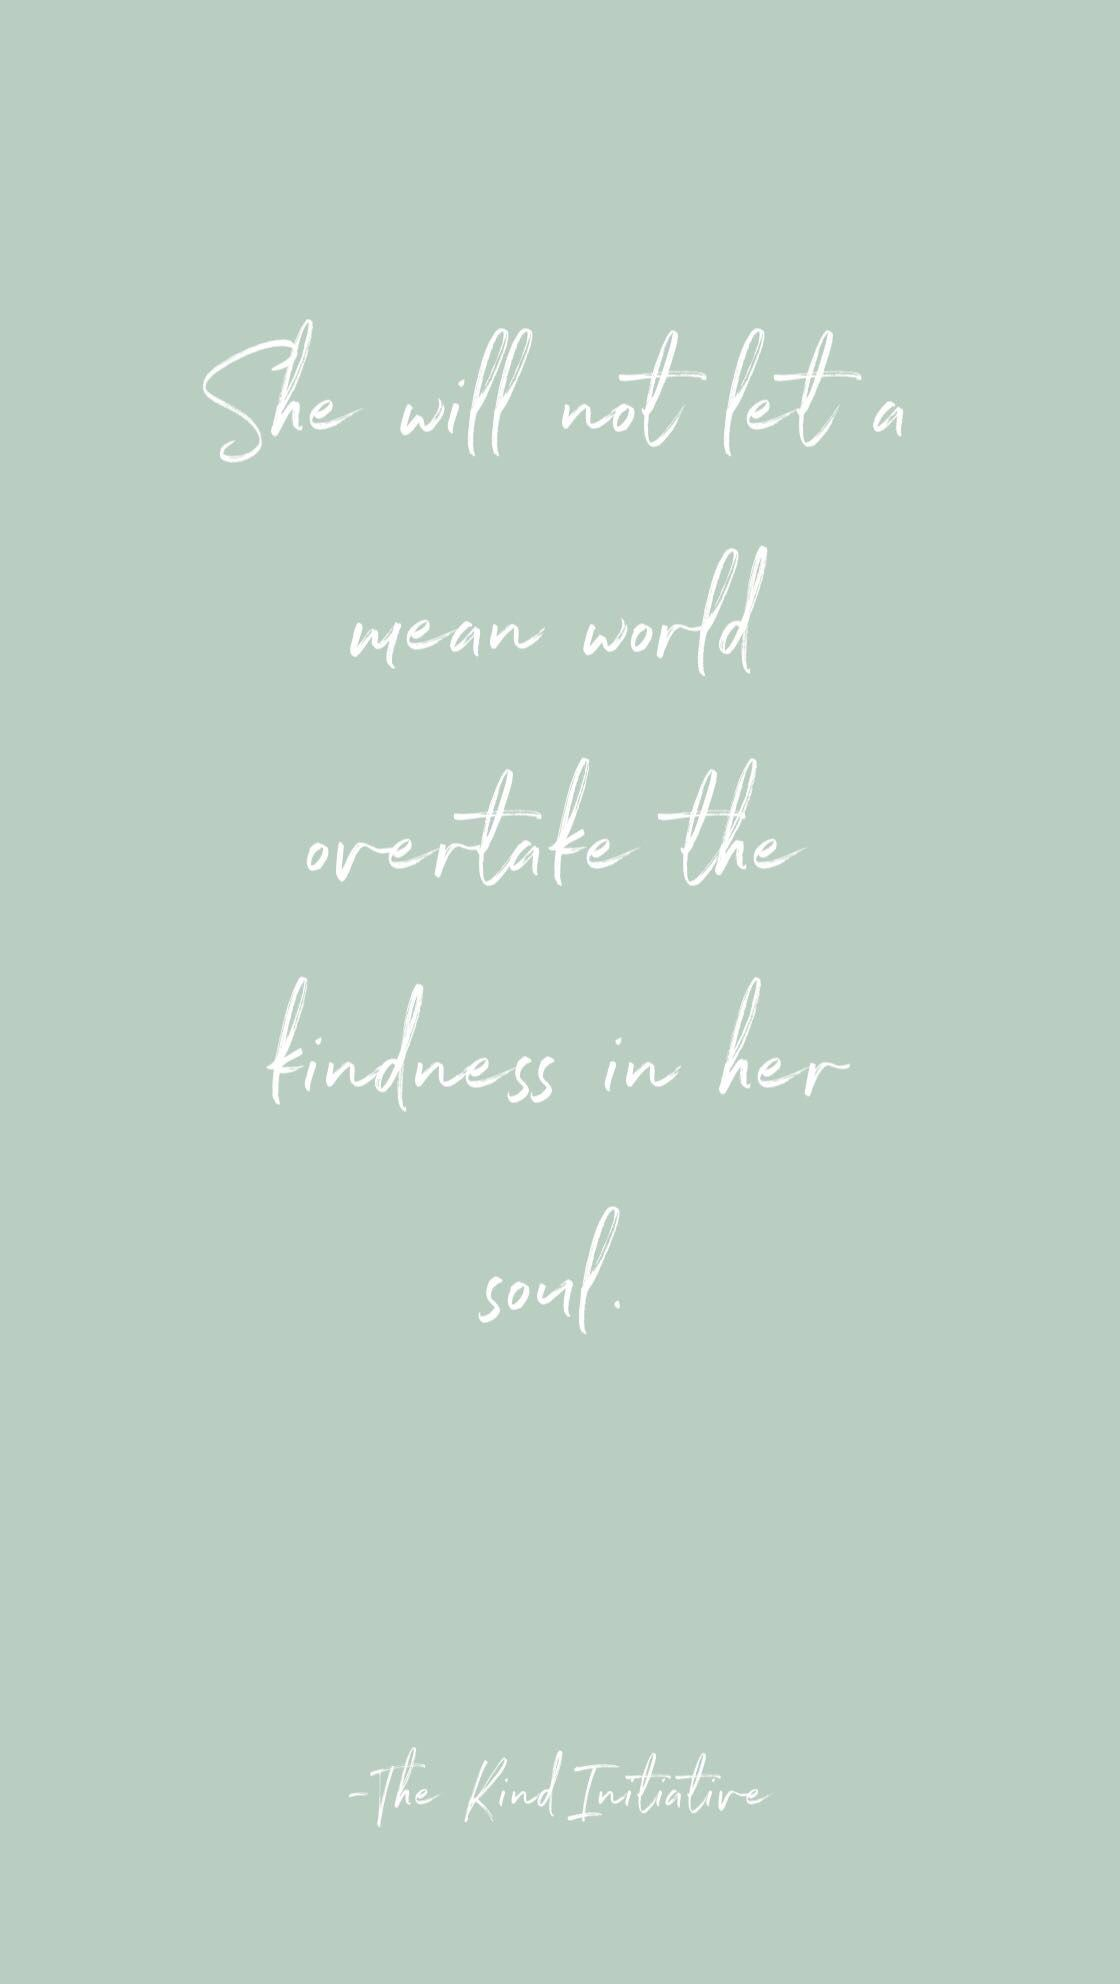 Pin By Deana Gorena On Word Pinterest Inspirational Quotes